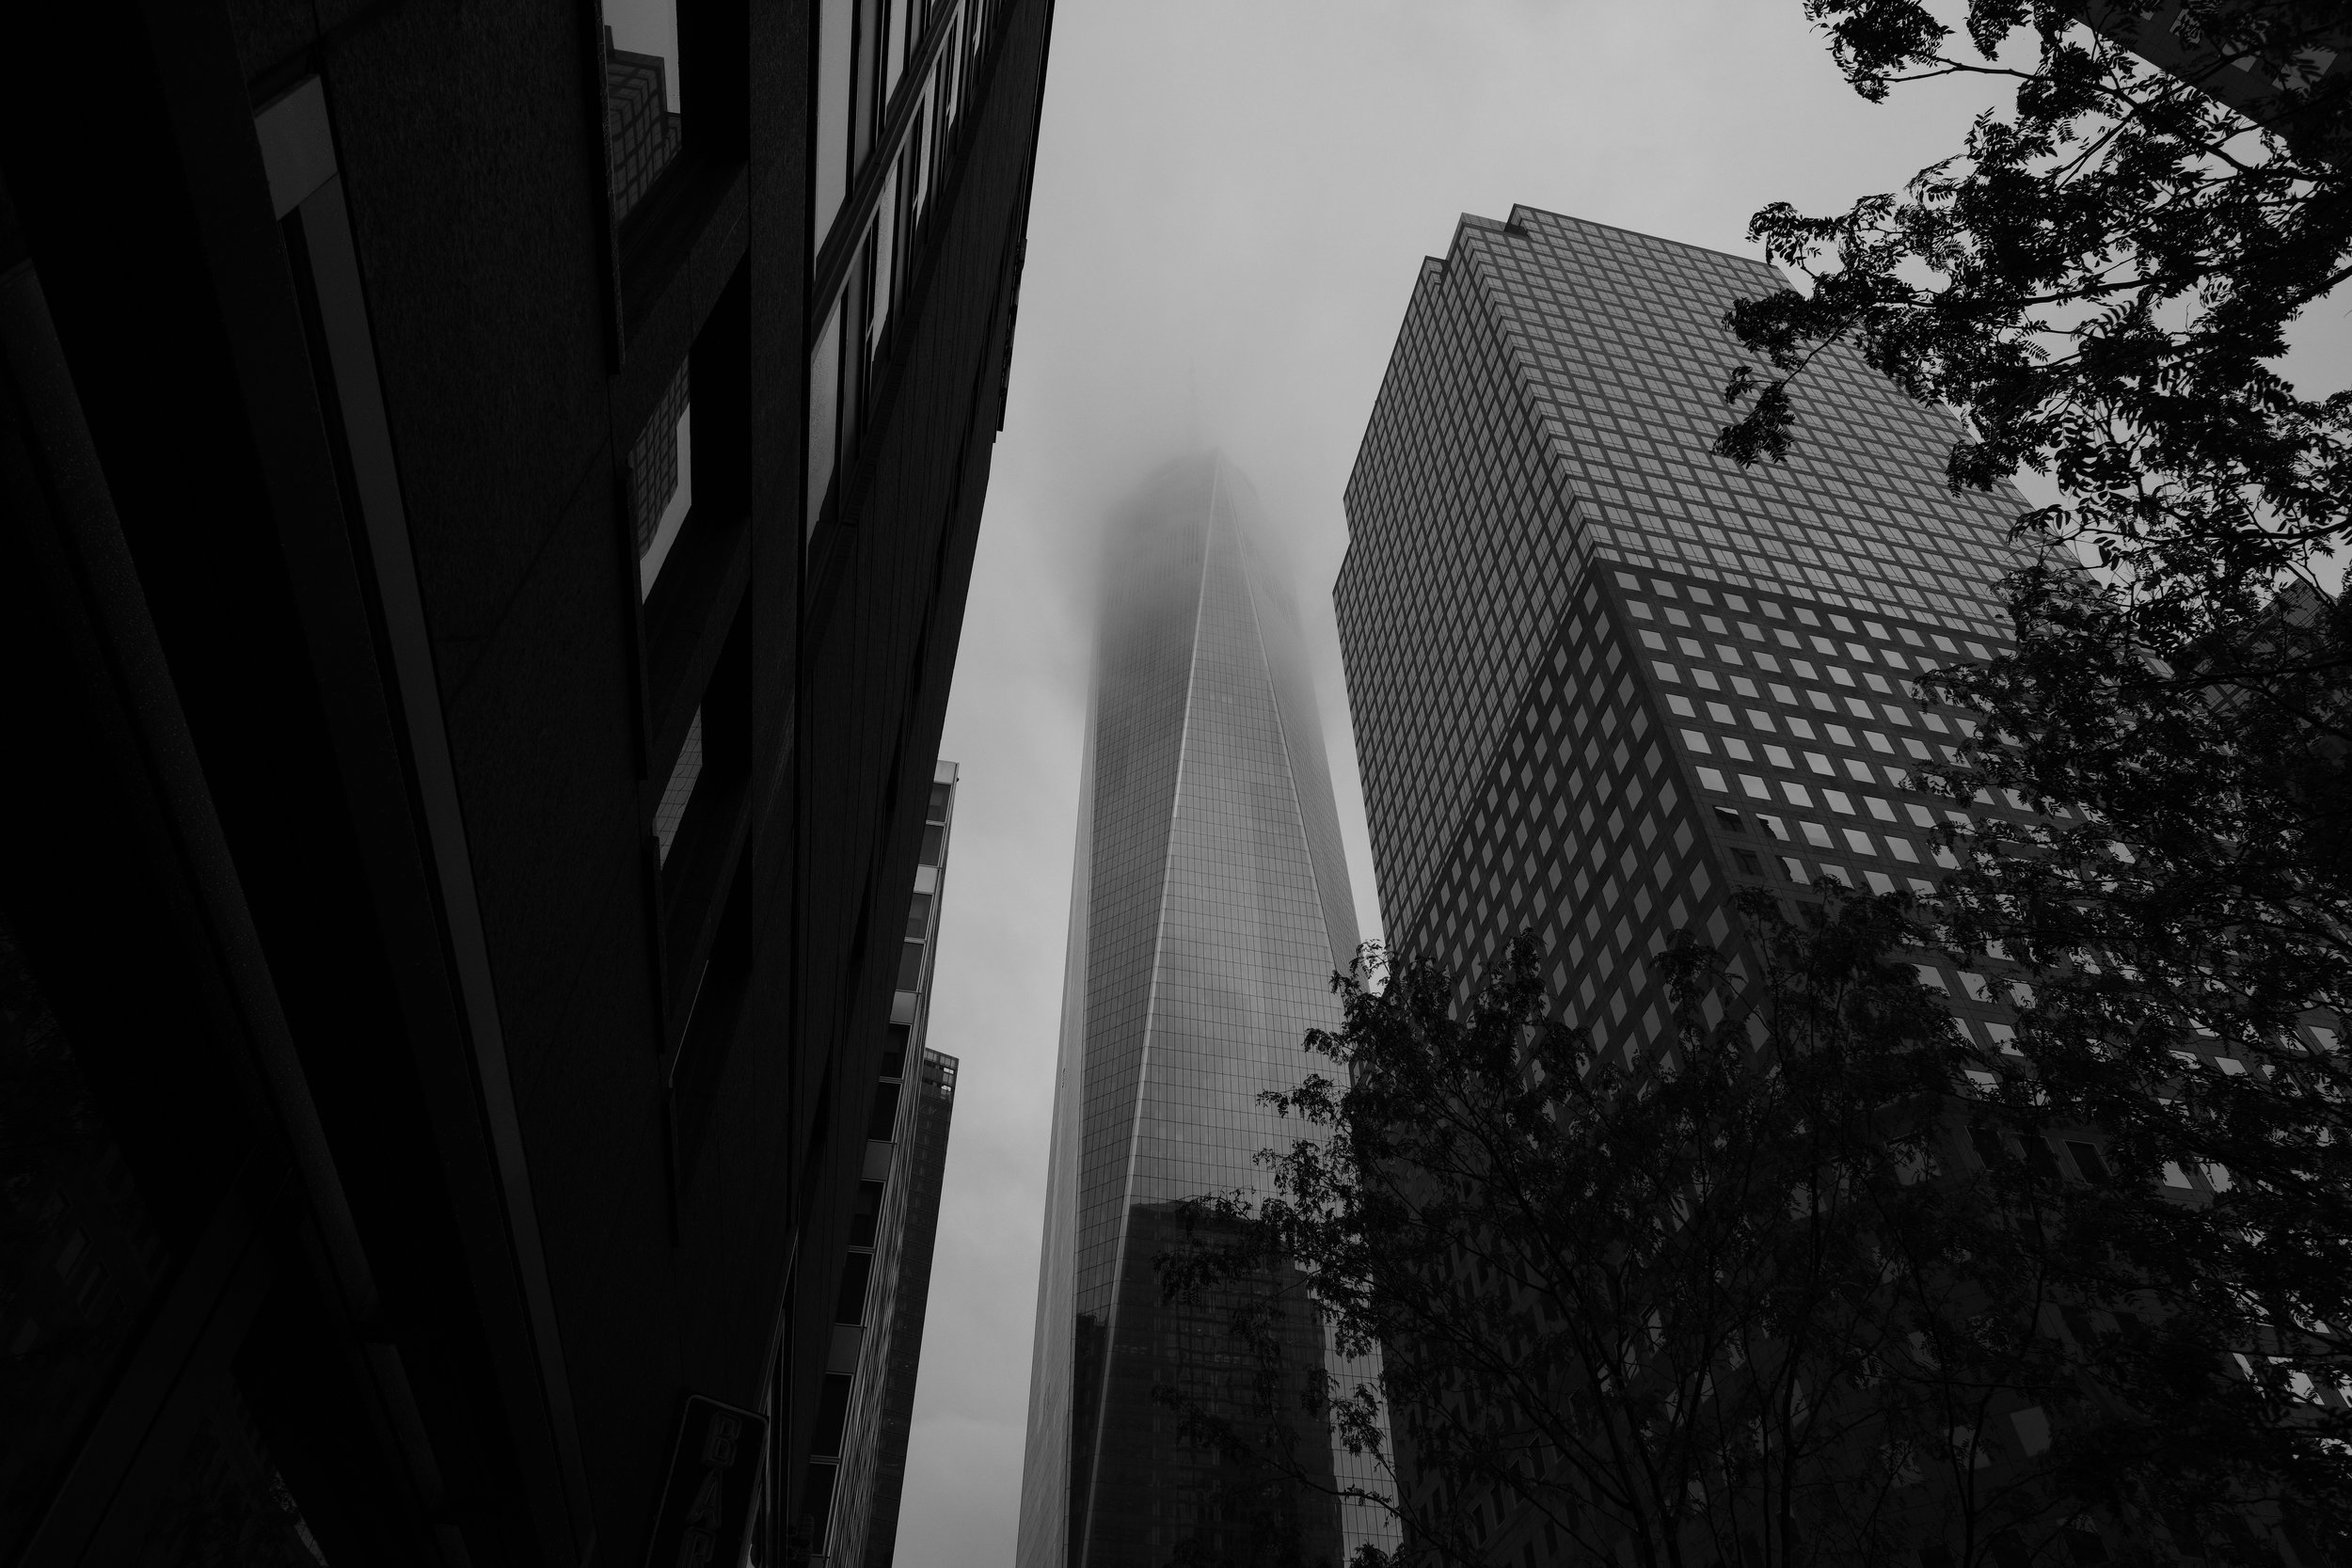 One World Trade Center from the Blue Smoke on Vesey Street, SOOC, Acros NeoPan Film Emulation.